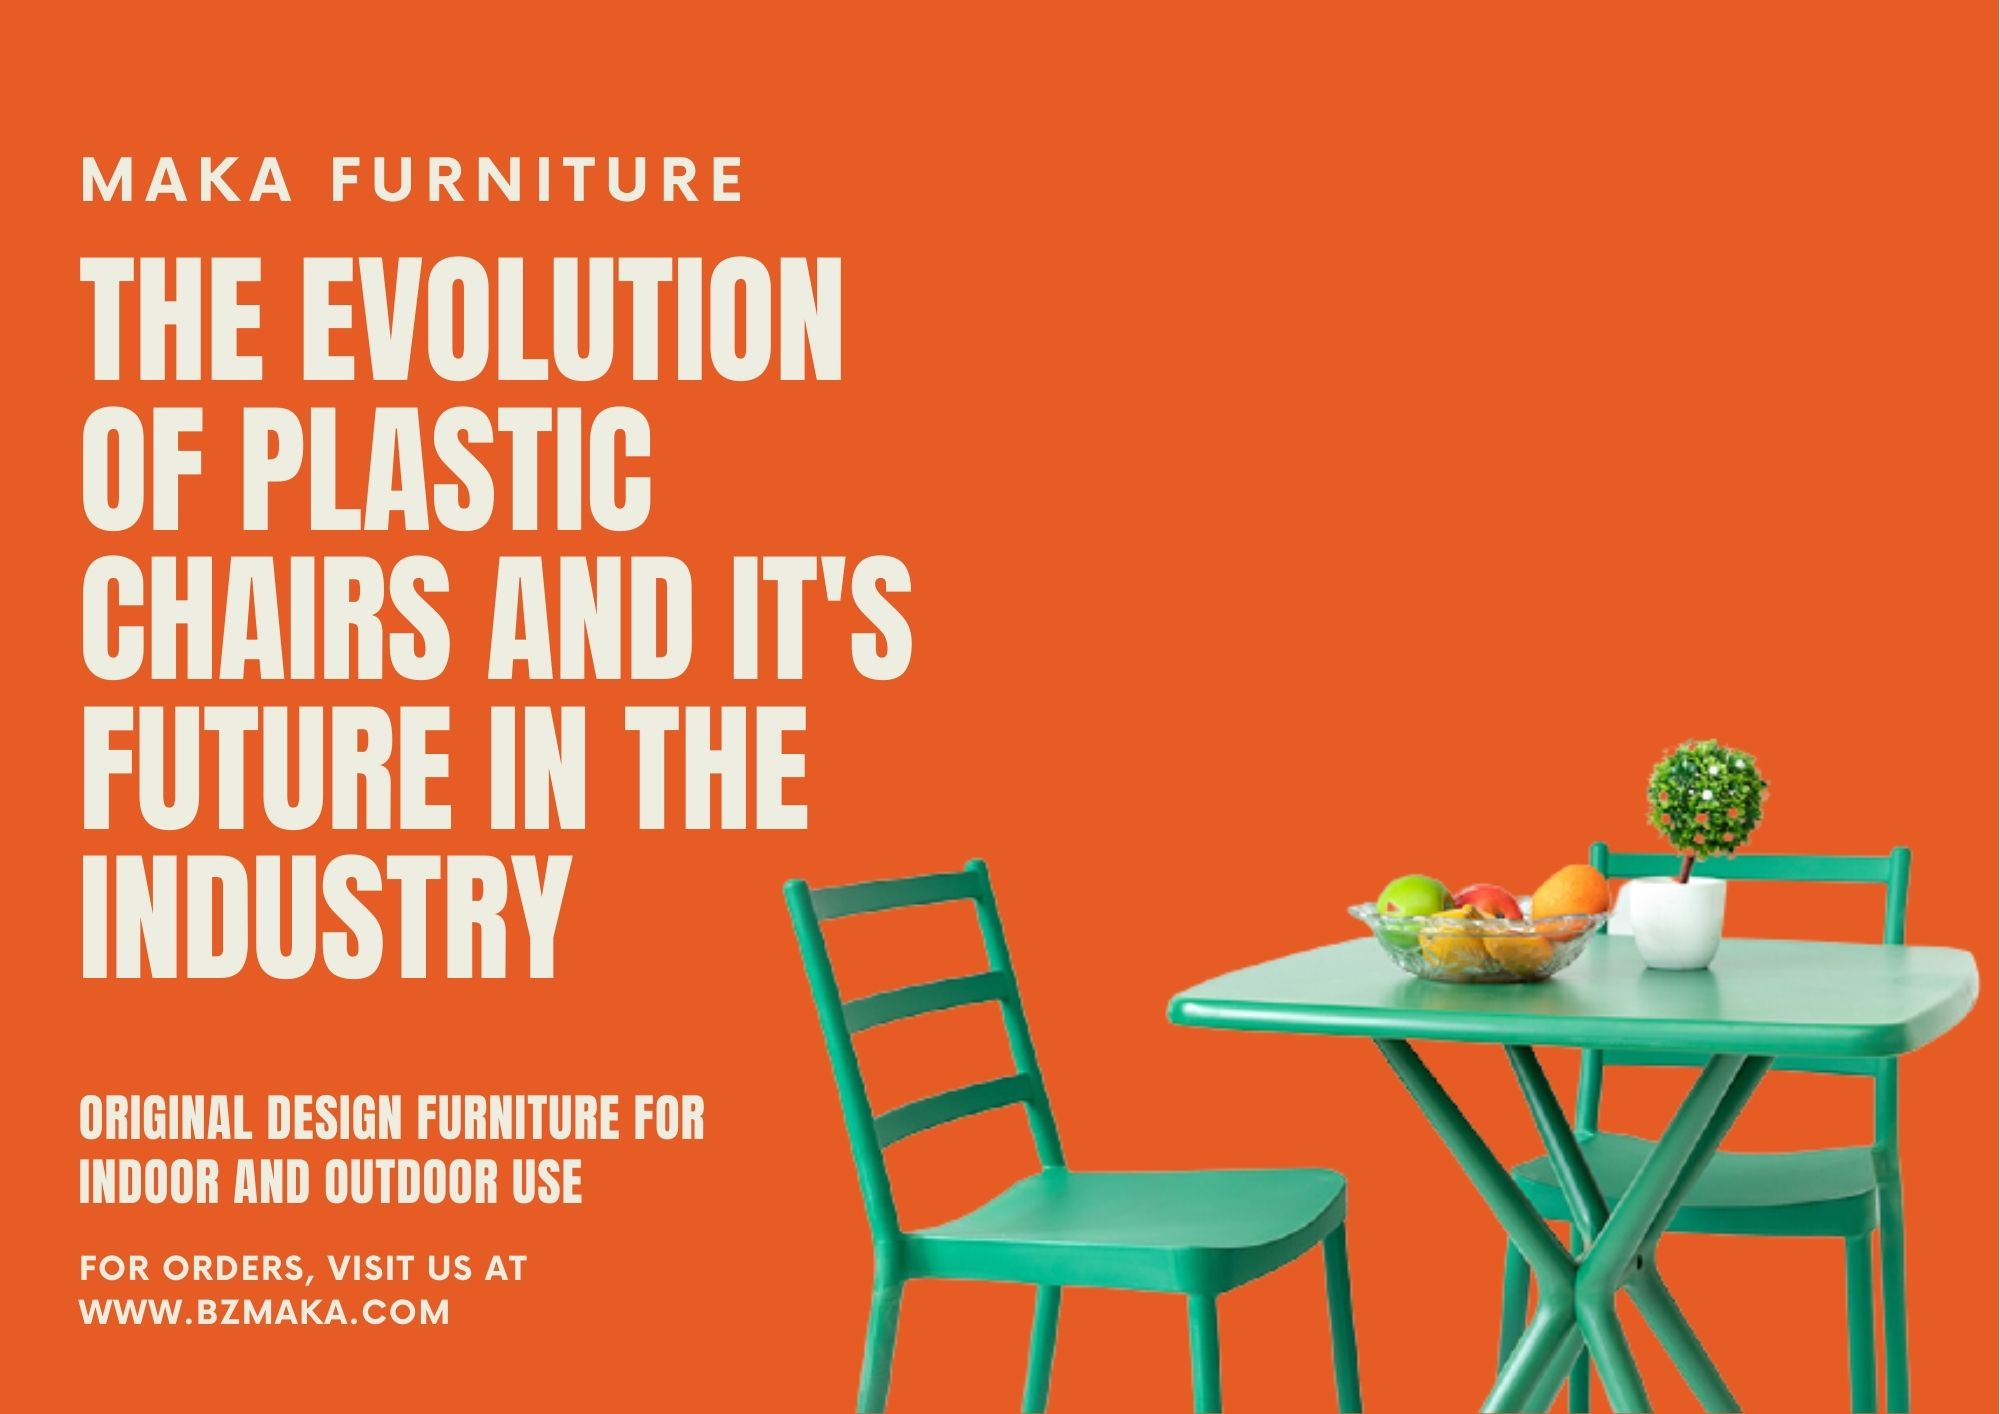 The Evolution of Plastic Chairs and Its Future in the Industry